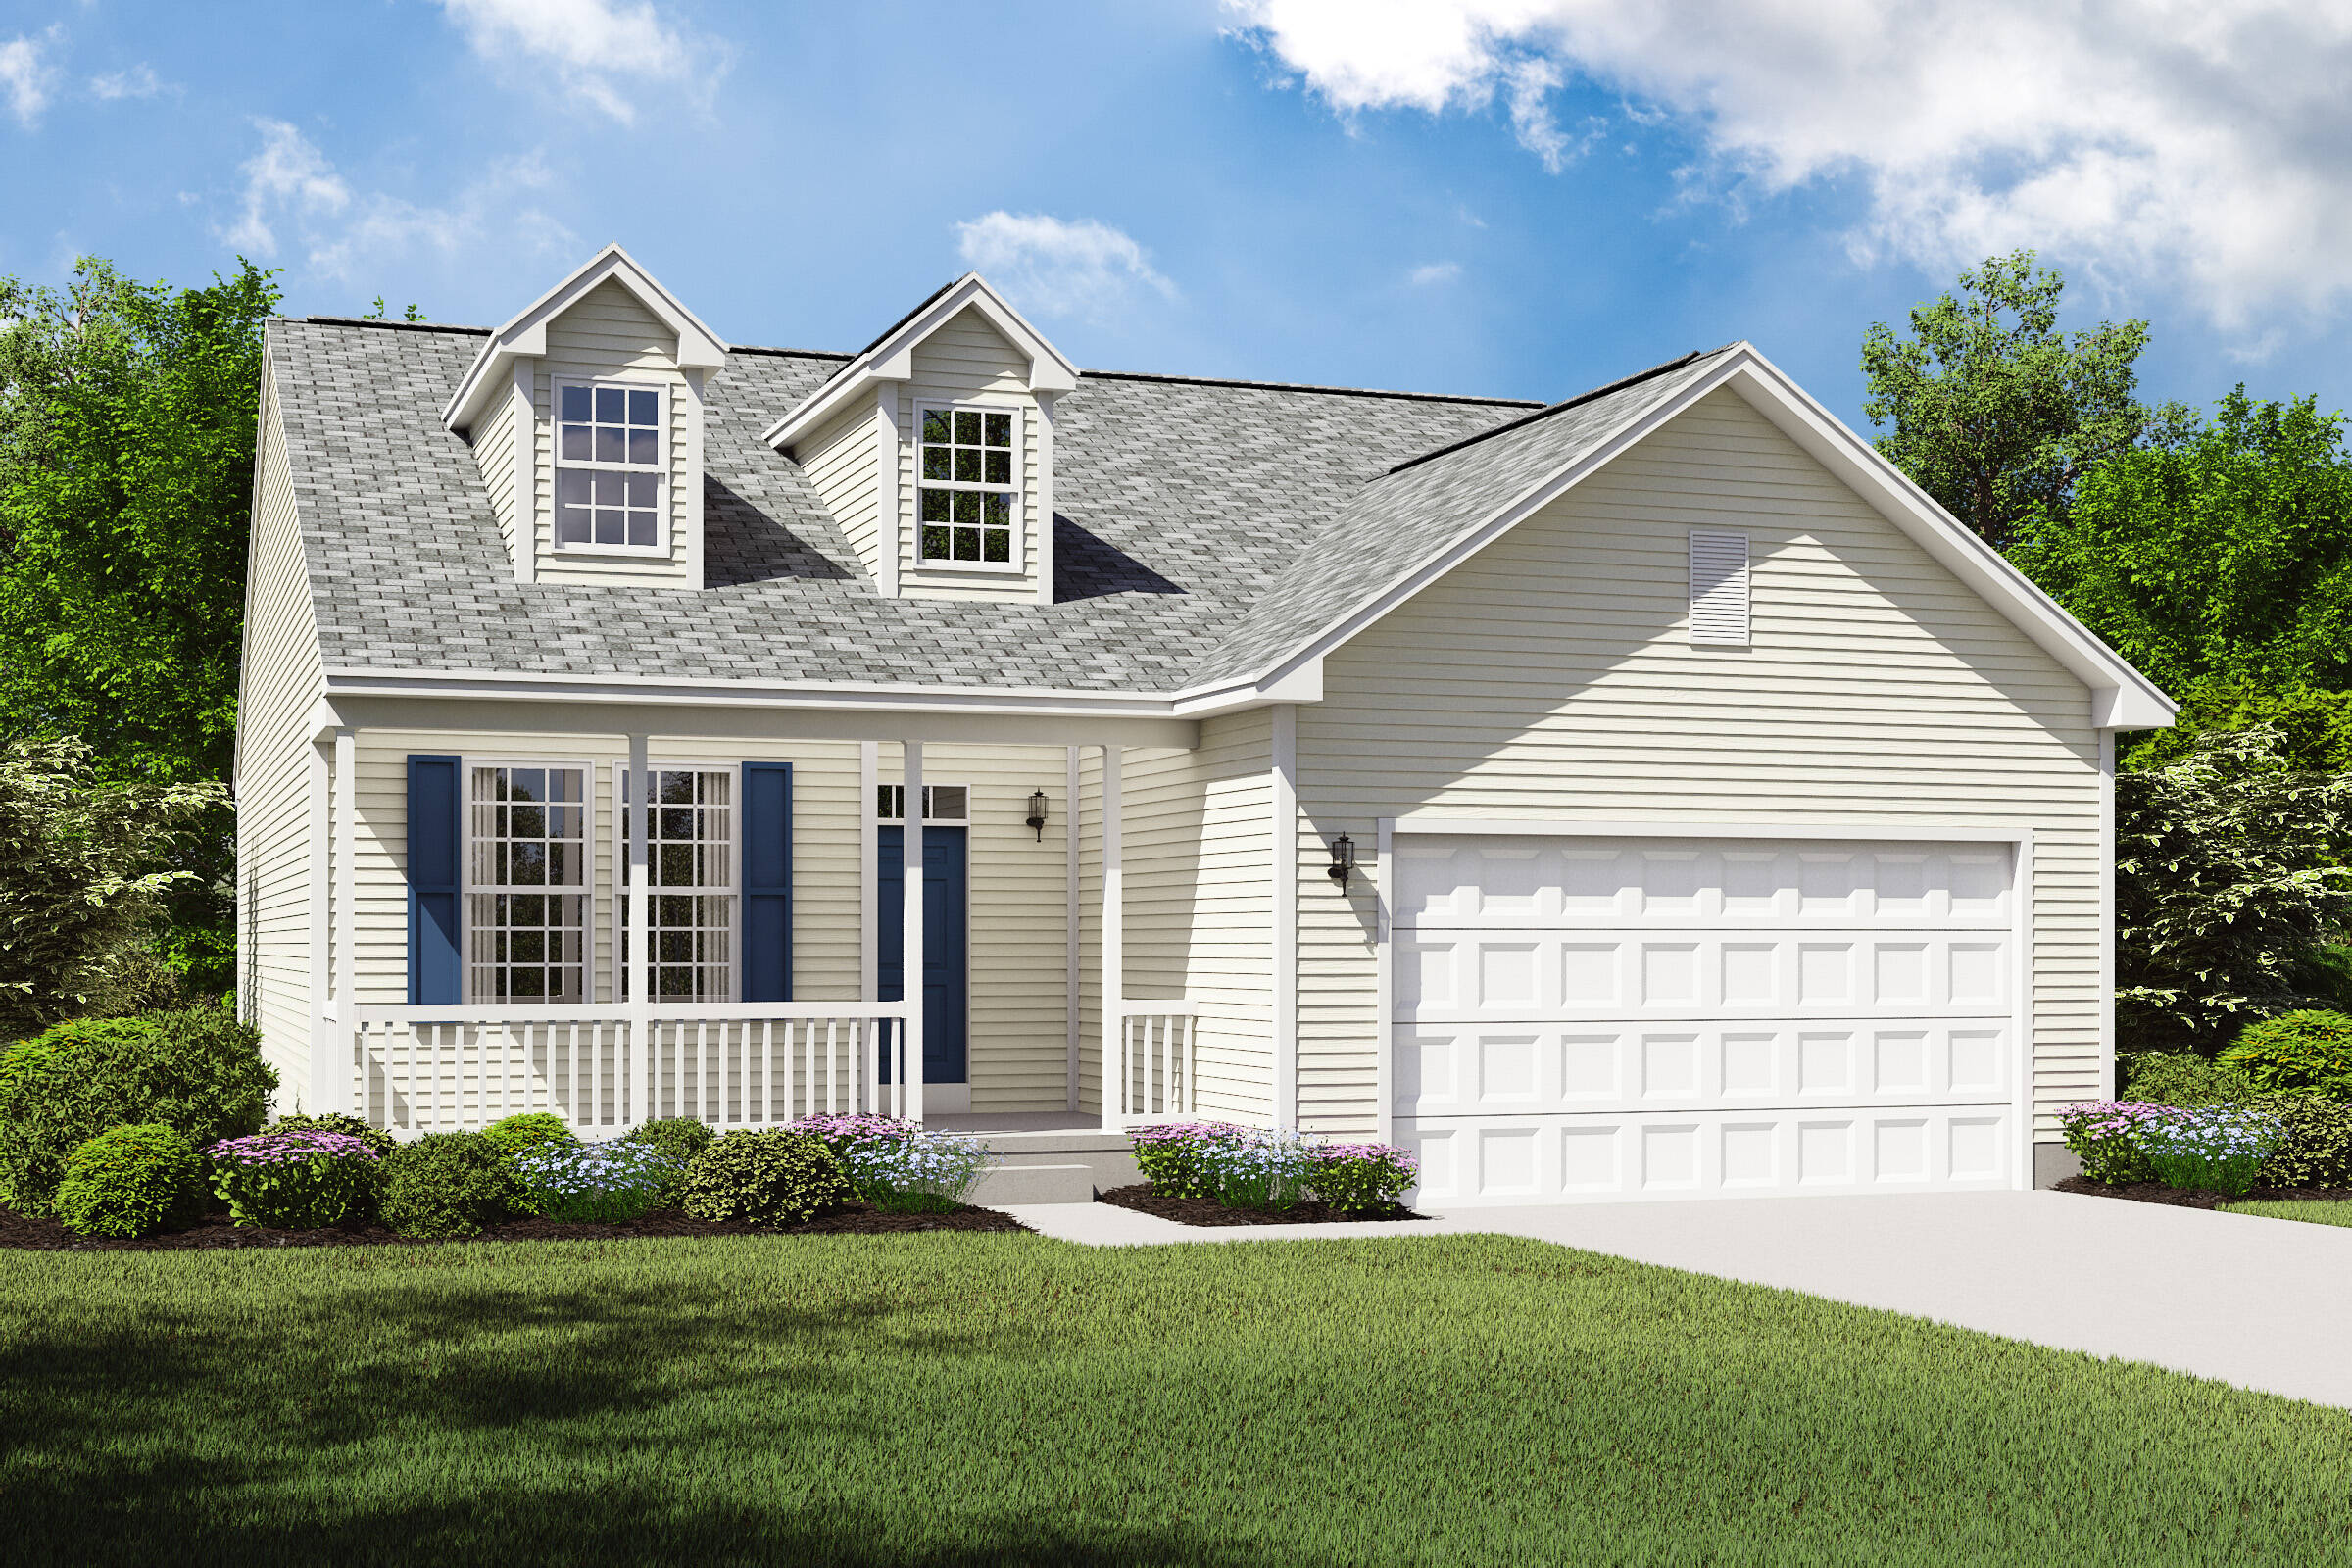 pinacle b new ranch home design cleveland ohio